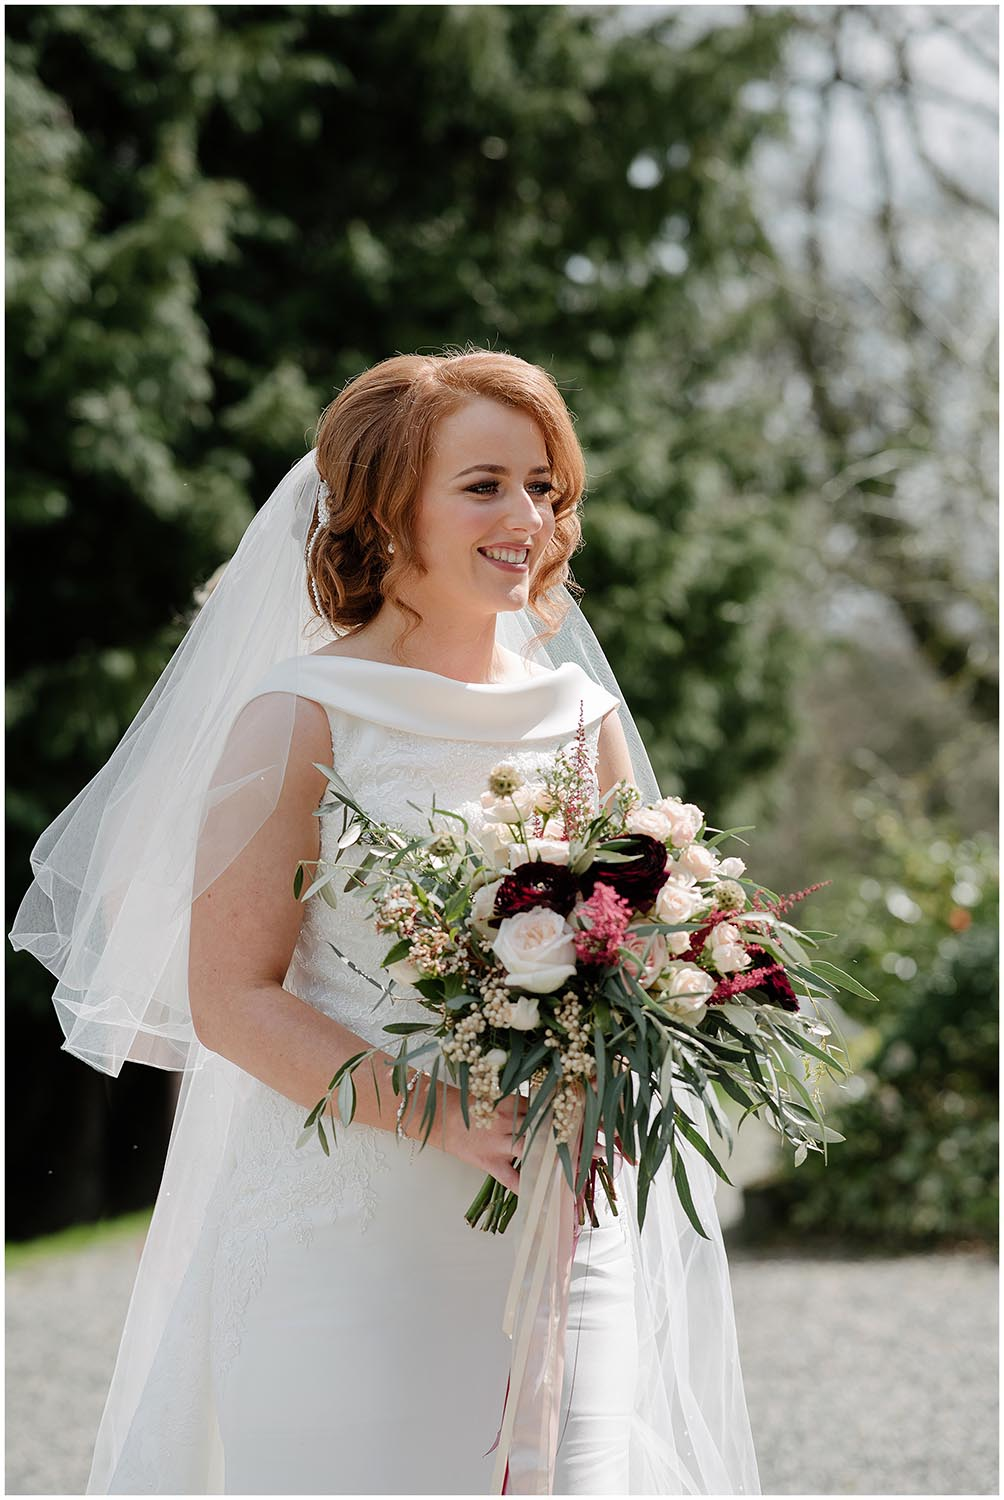 Irish-wedding-photographer-jude-browne-photography_0112.JPG